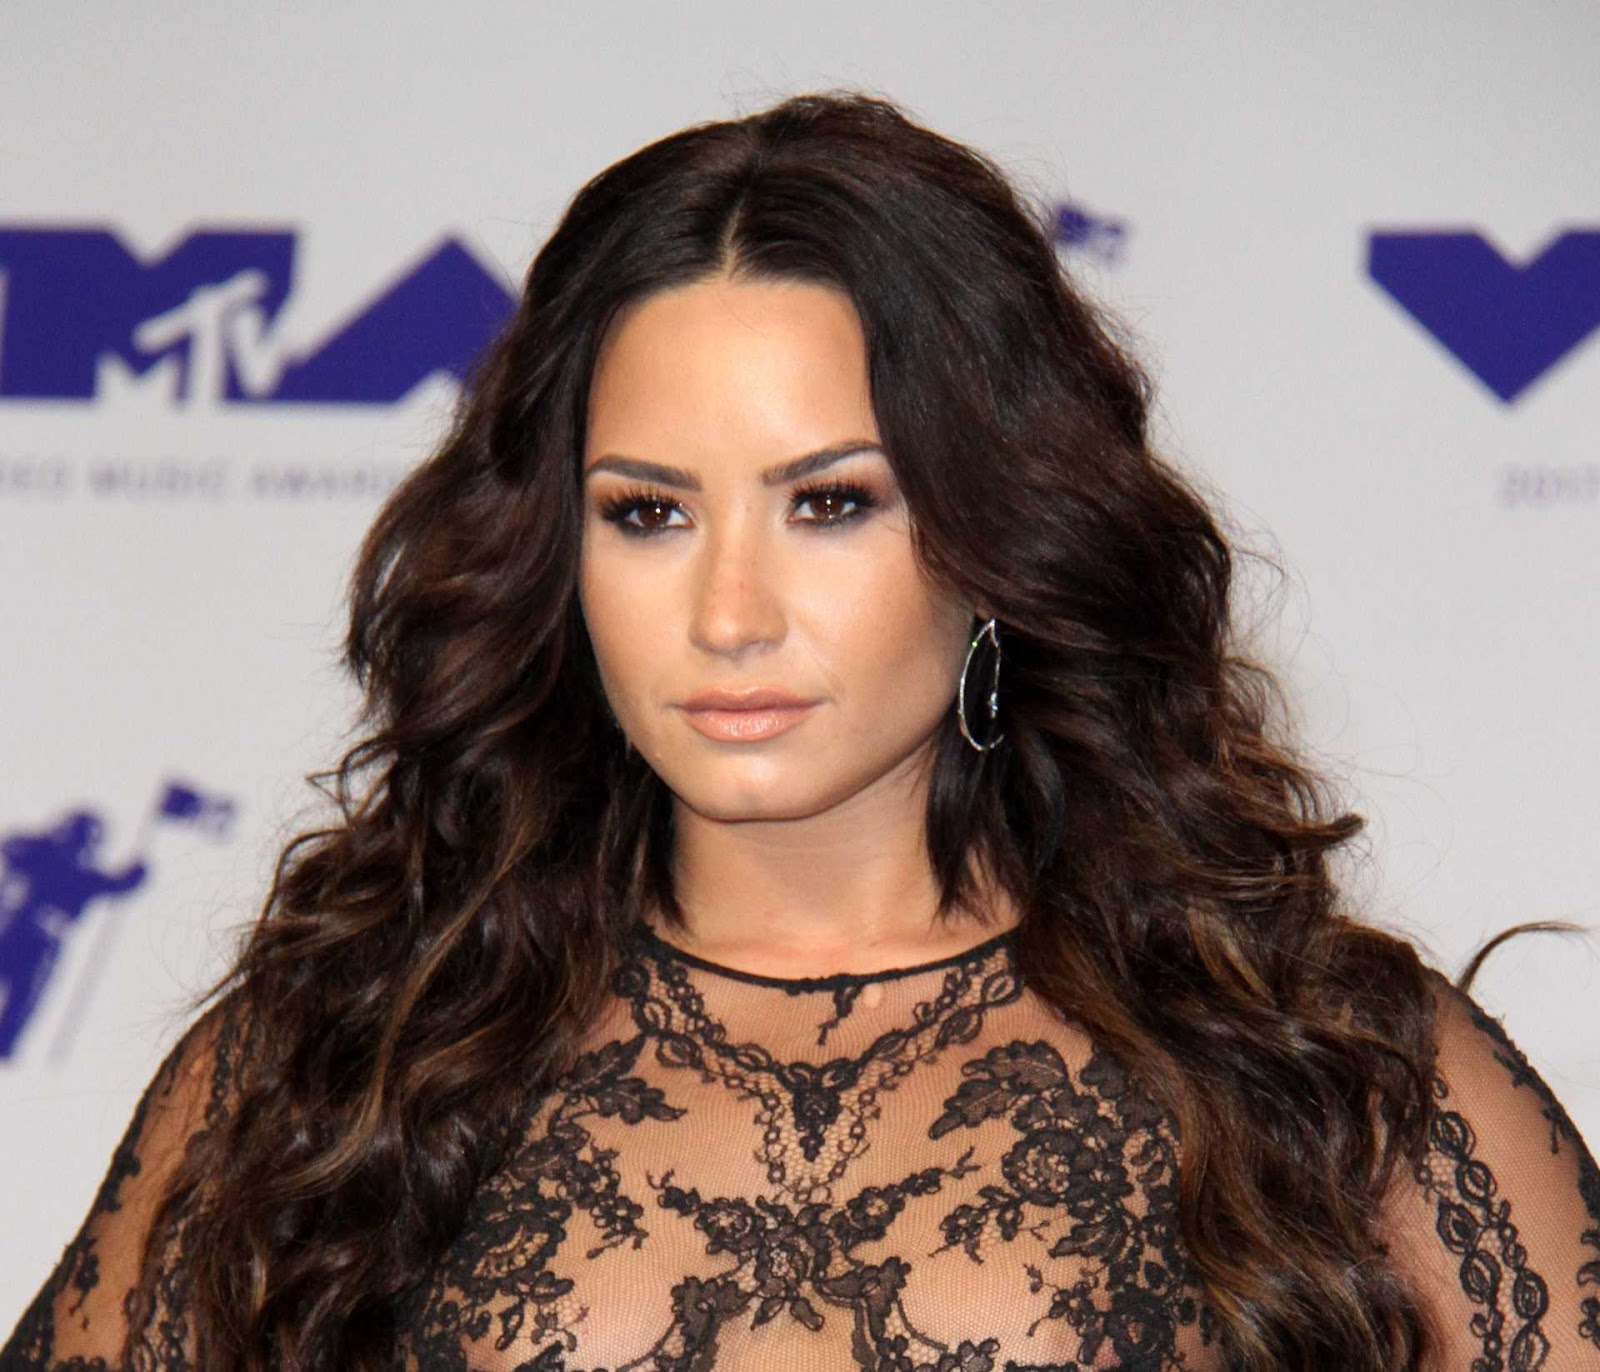 Demi Lovato flashes her nipples in lacy see-through top